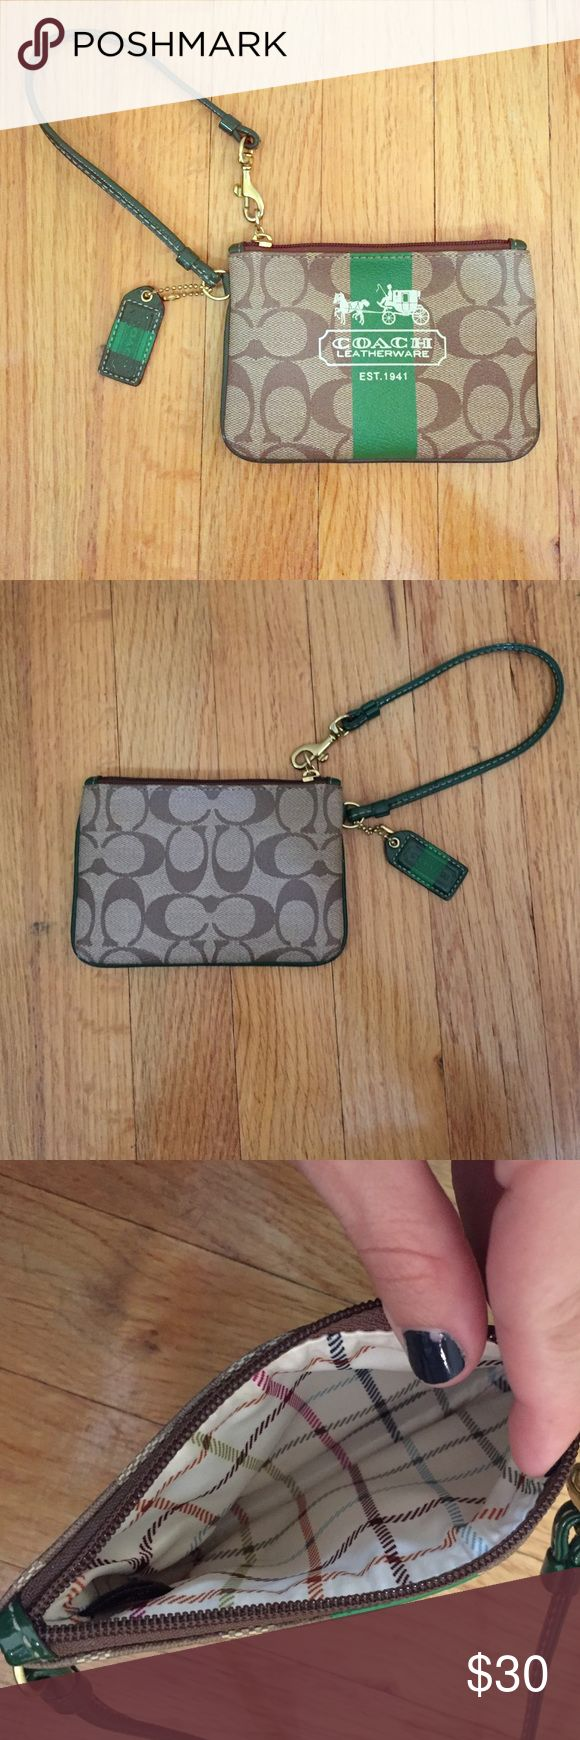 Coach Wristlet This was purchased it from a Coach Outlet Store (Tanger Outlets). It has been used less than a handful of times and is in great condition. Coach Bags Clutches & Wristlets